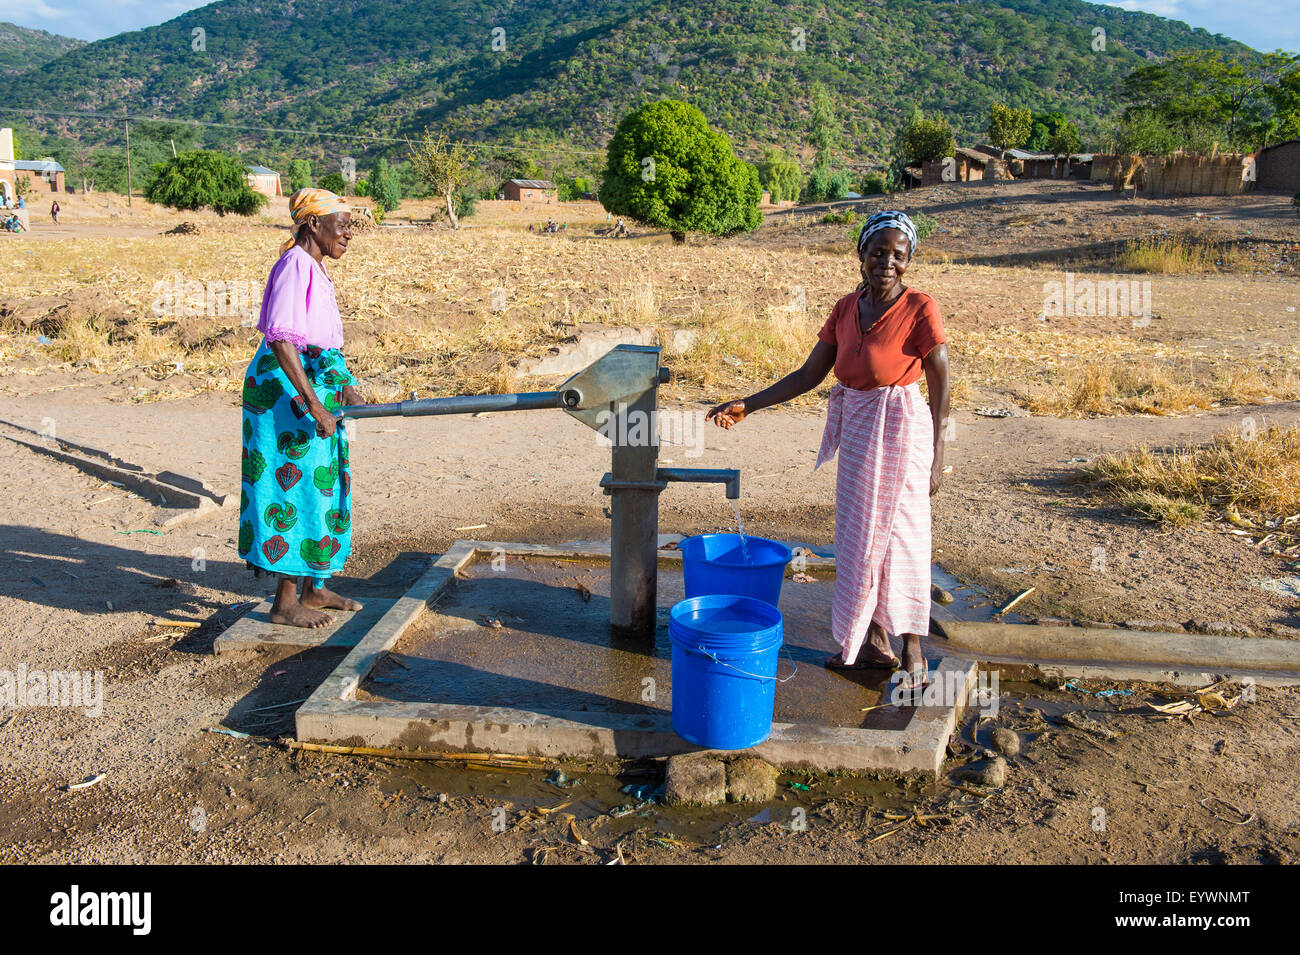 Women pumping water out of a well at Lake Malawi, Cape Maclear, Malawi, Africa - Stock Image